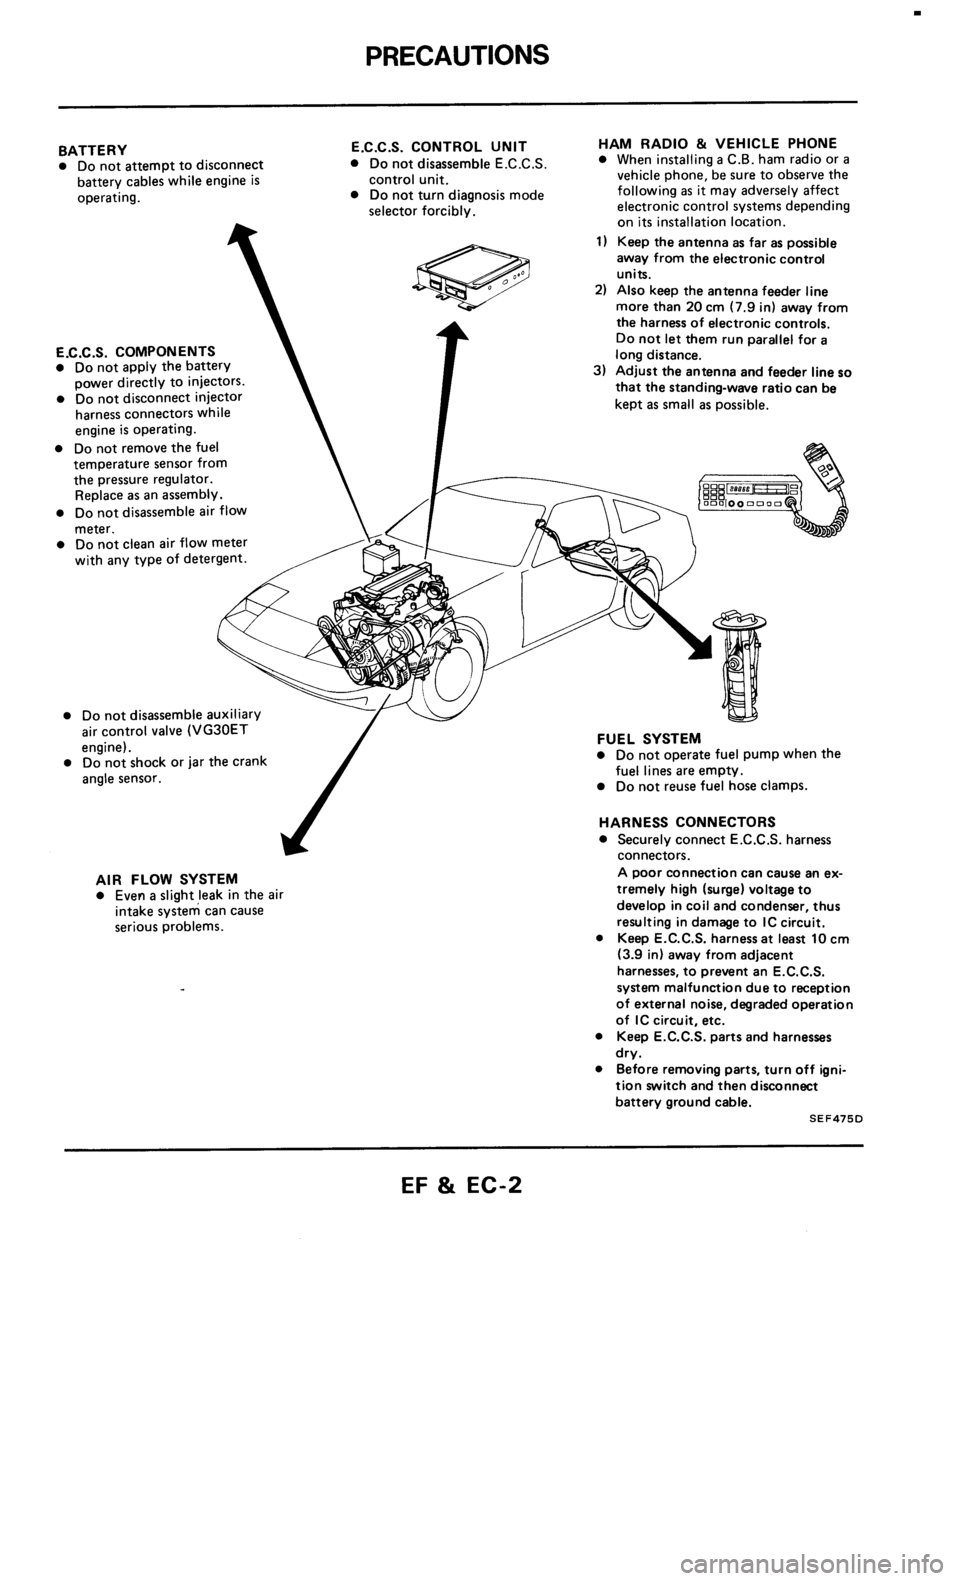 Nissan 300zx 1986 Z31 Engine Fuel And Emission Control System Filter Location Workshop Manual